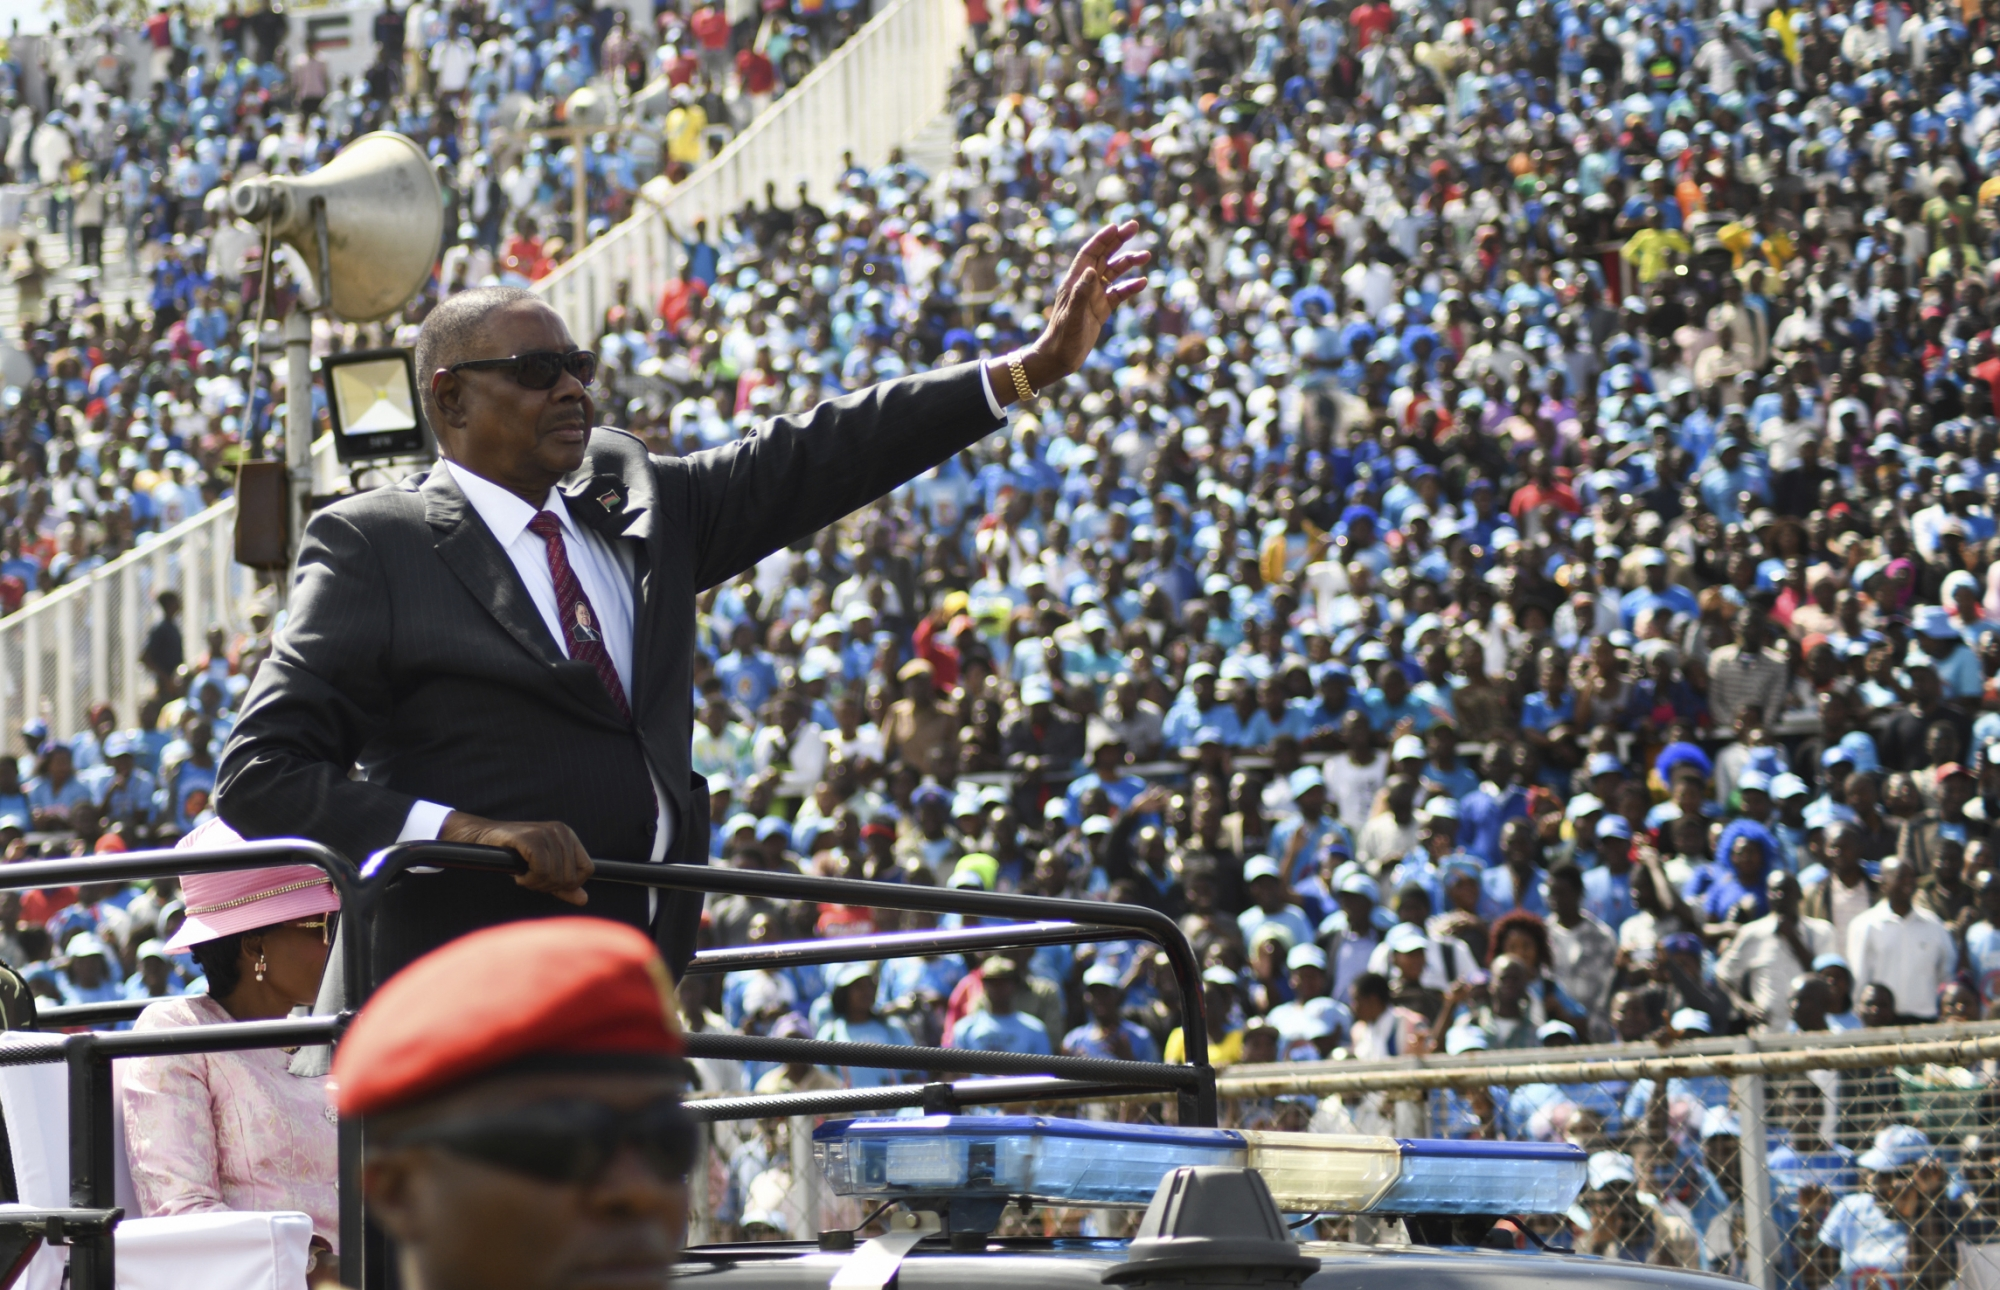 Malawi Opposition Leader Petitions To Nullify Vote Results